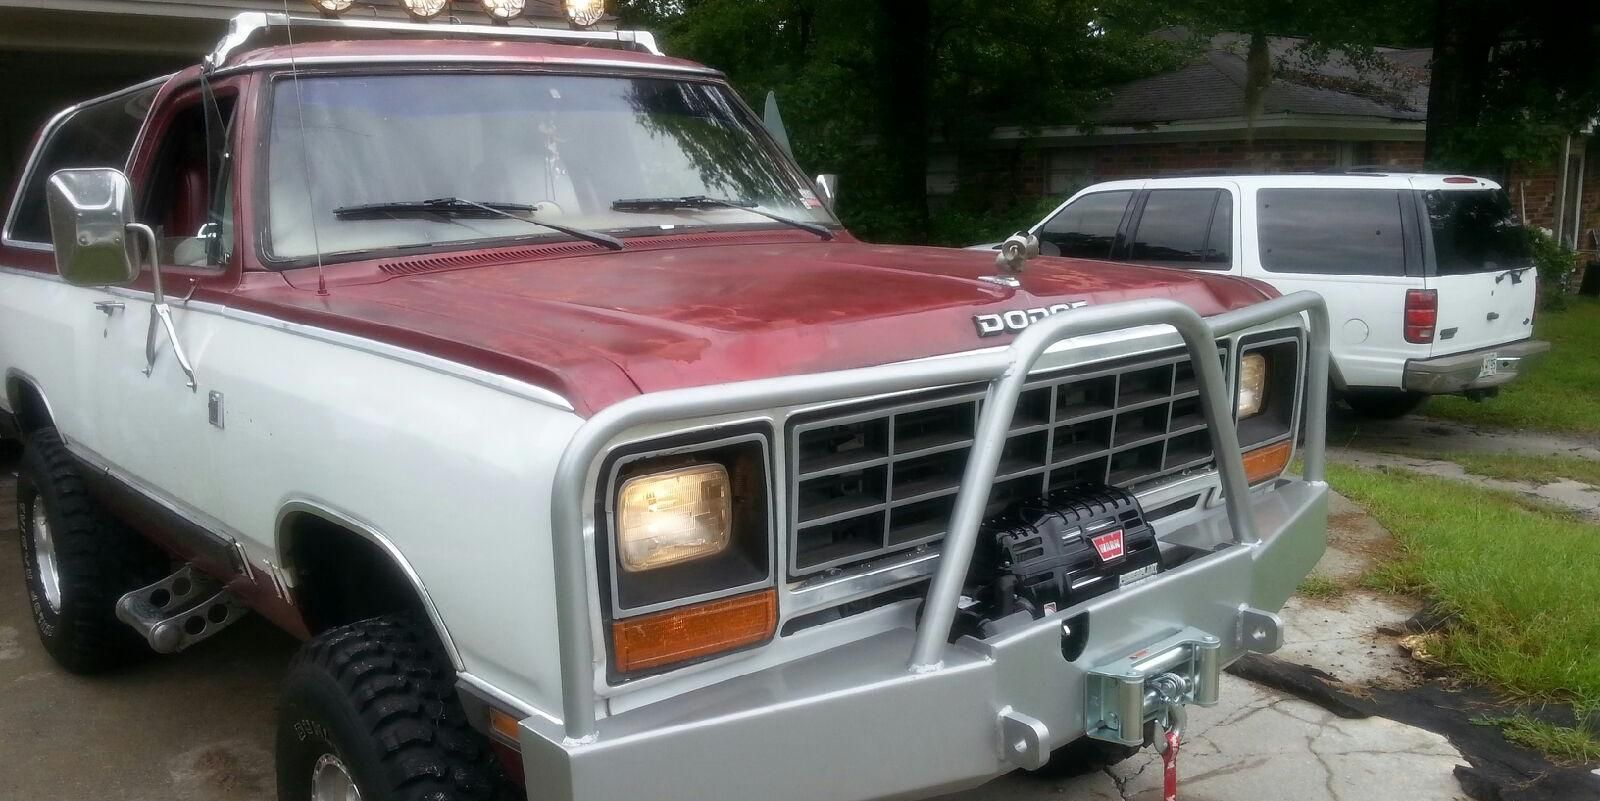 90 Ramcharger 1990 Dodge Ramcharger Specs Photos Modification Info At Cardomain Dodge Ramcharger Dodge Modification